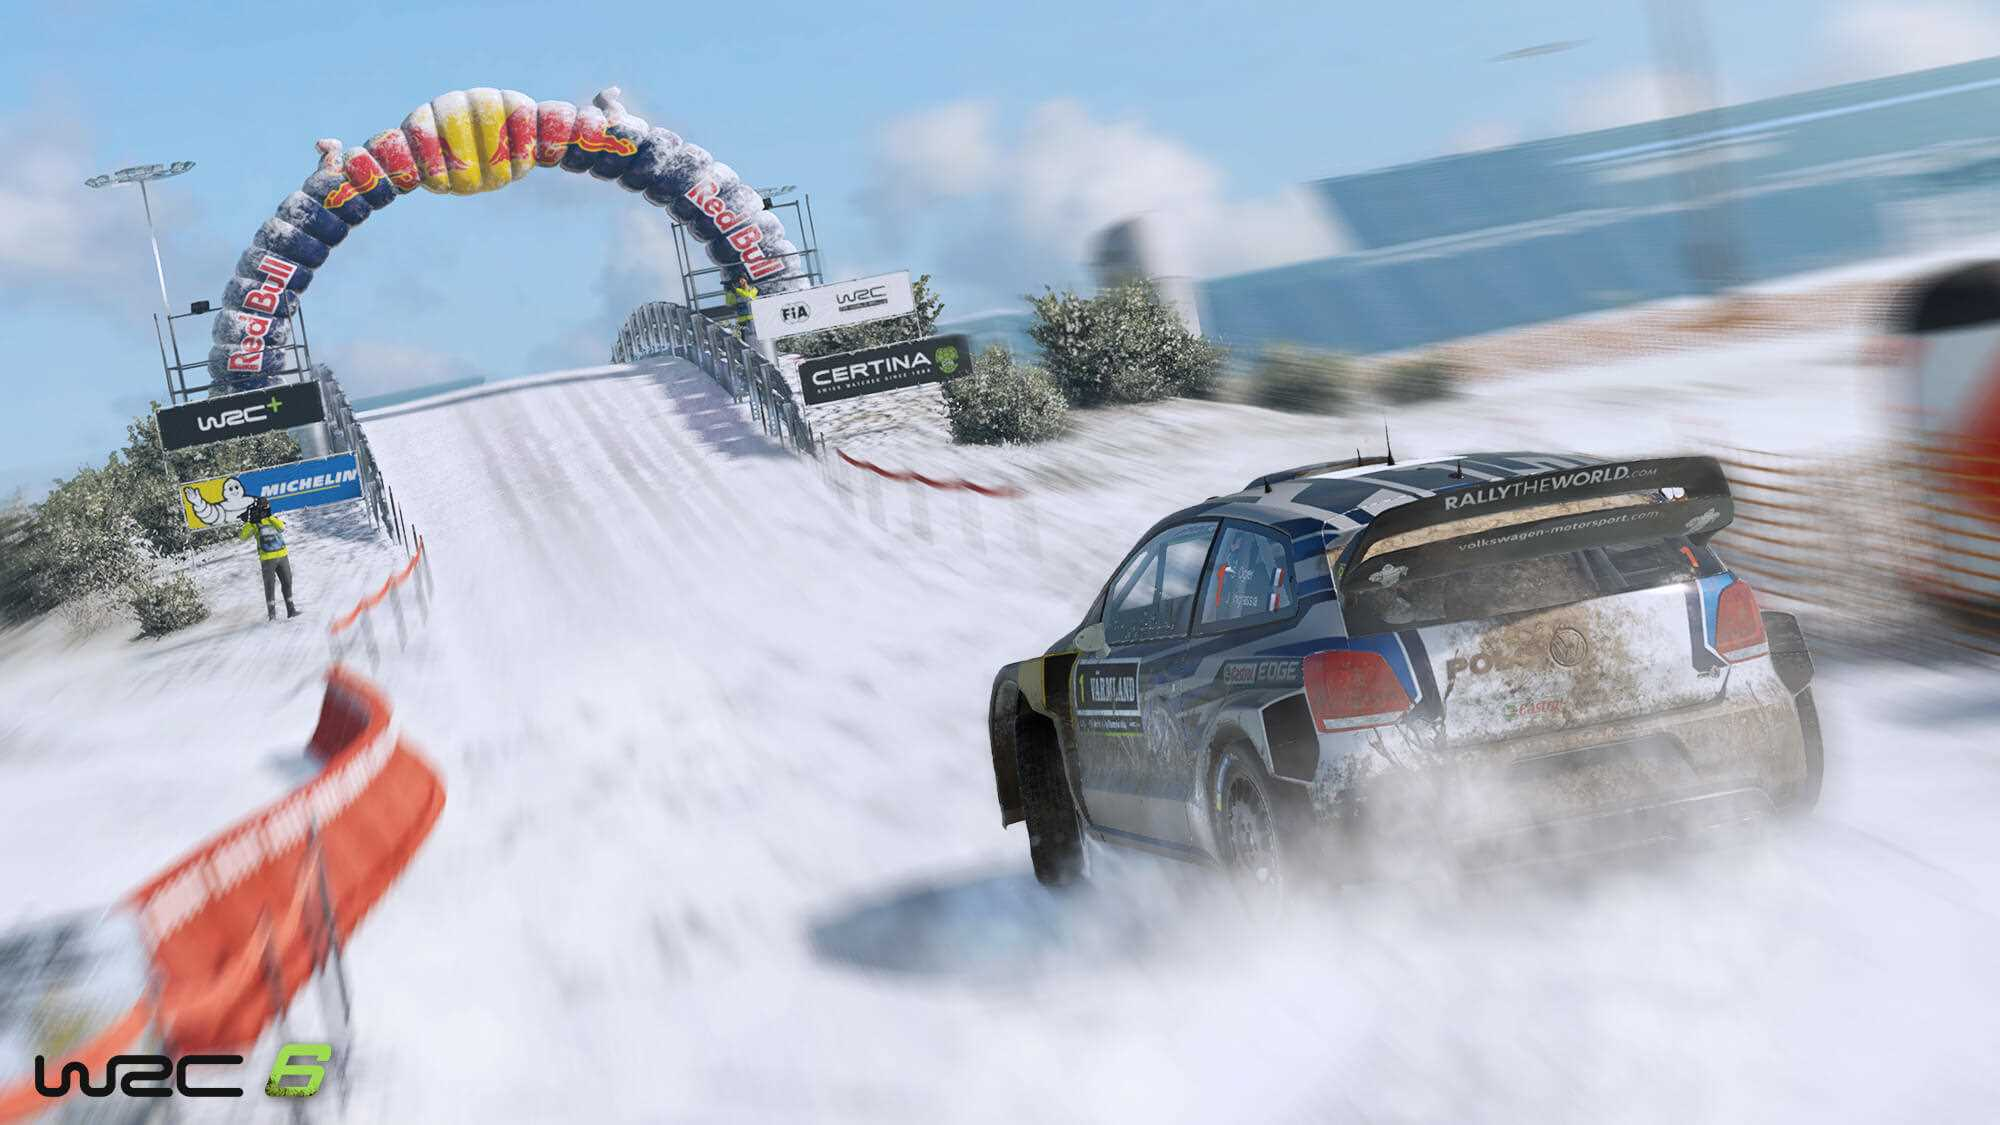 WRC 6 releases on PC, PS4 and Xbox One